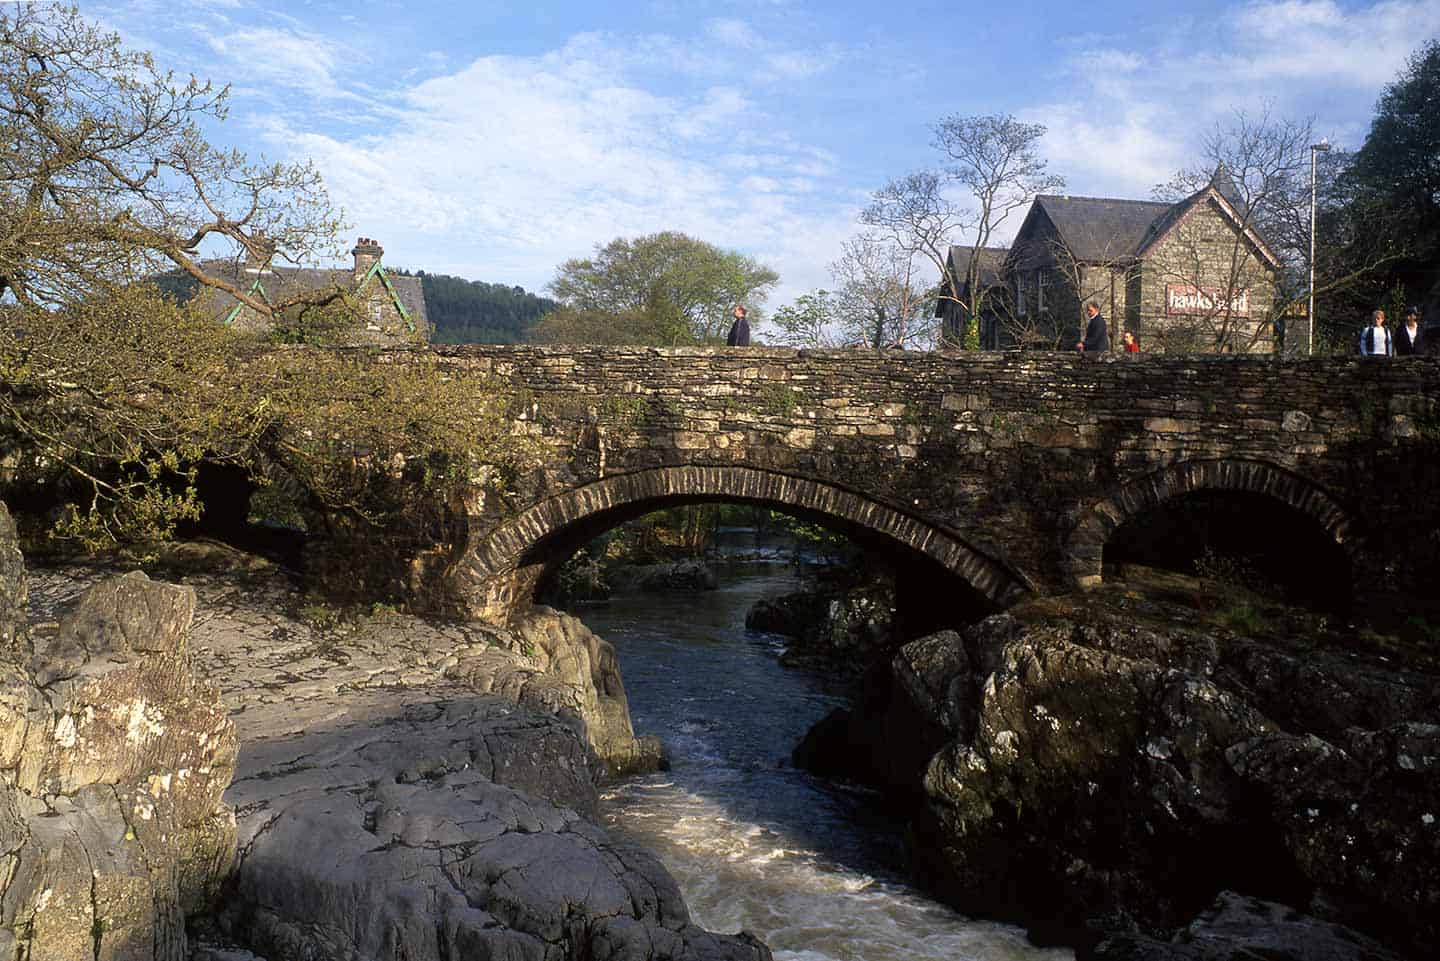 Image of the Pont-y-Pair bridge in Betws-y-Coed